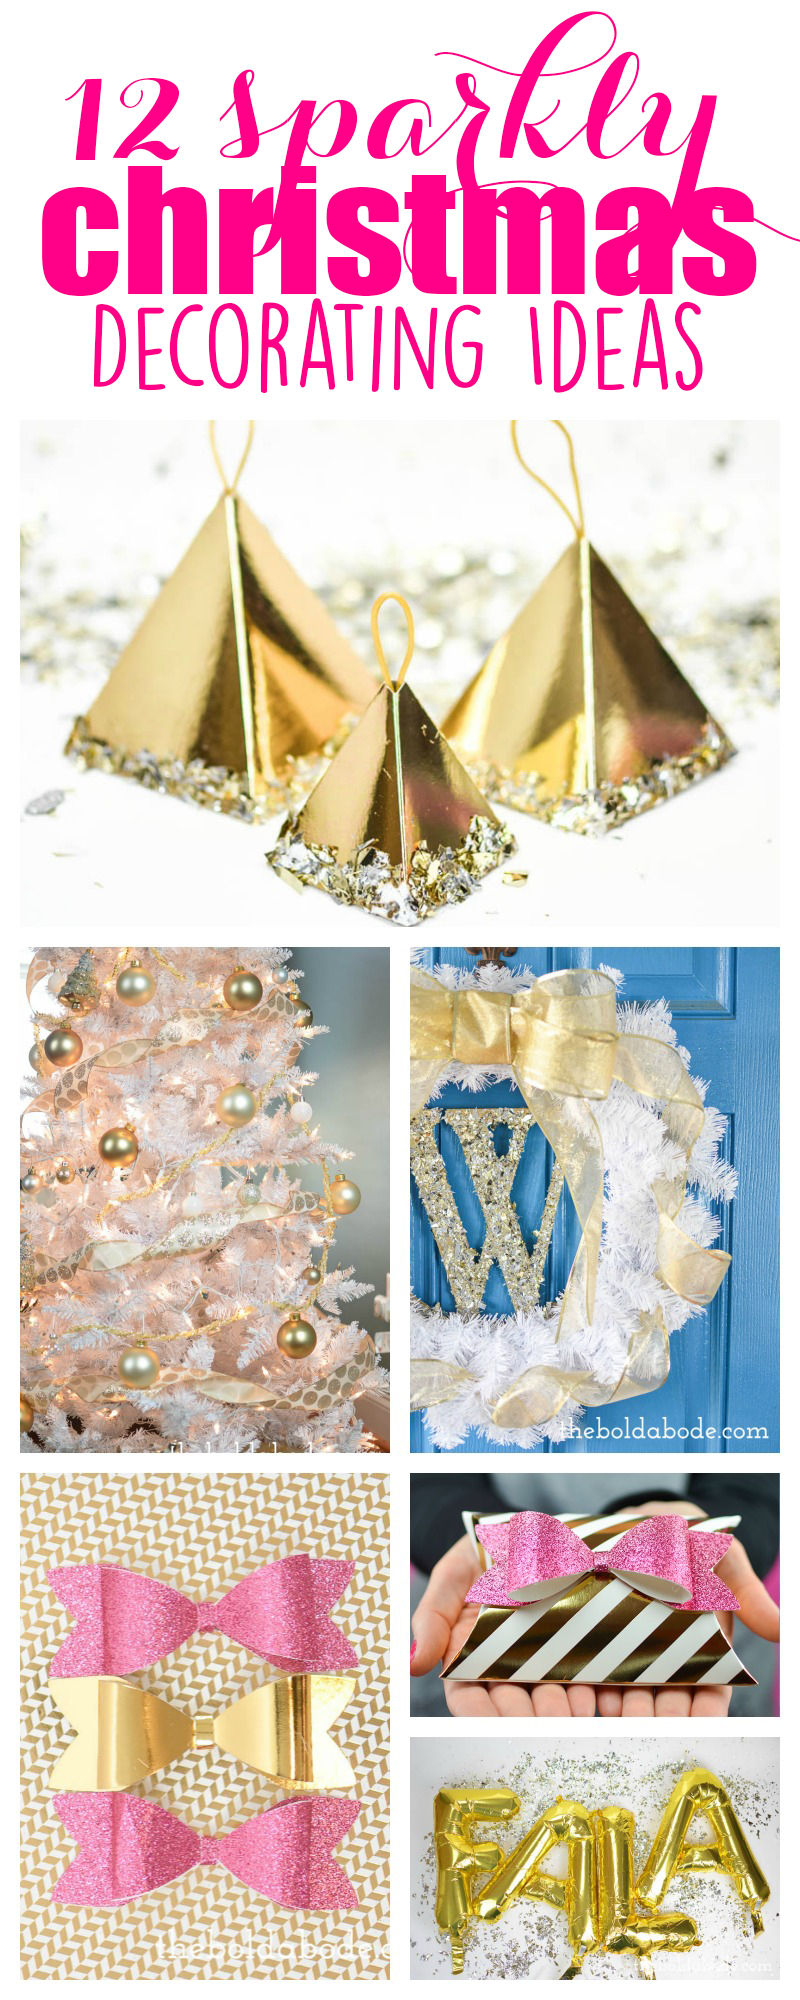 12 sparkly Christmas decorating ideas to bring some bling to your holidays!